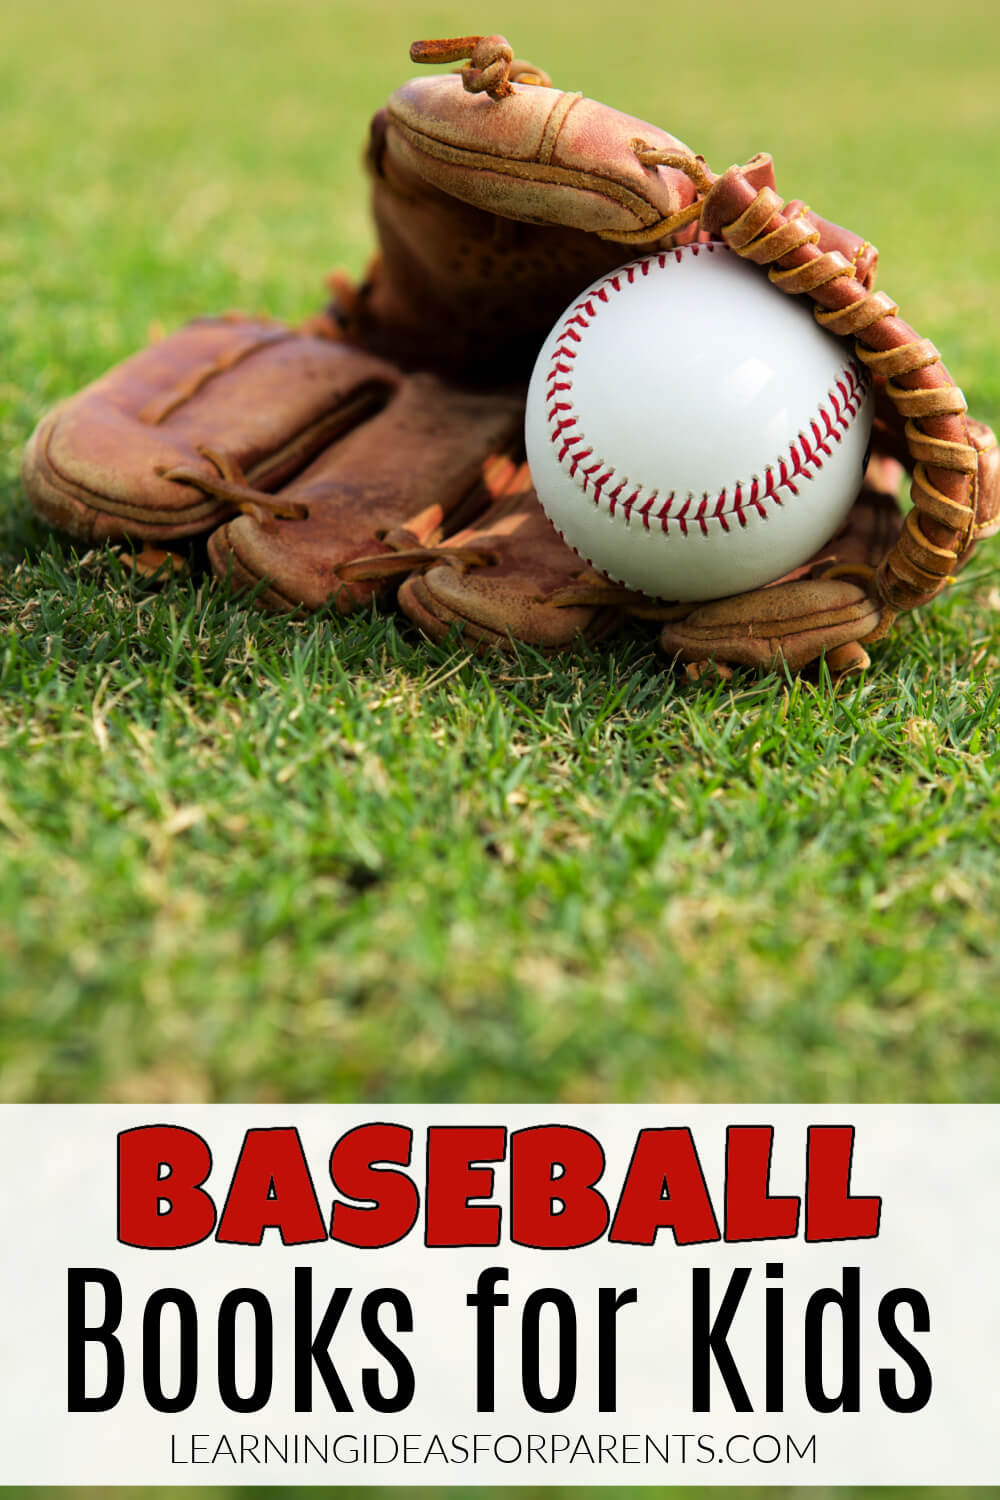 Baseball glove and ball. Books for Kids of all ages.